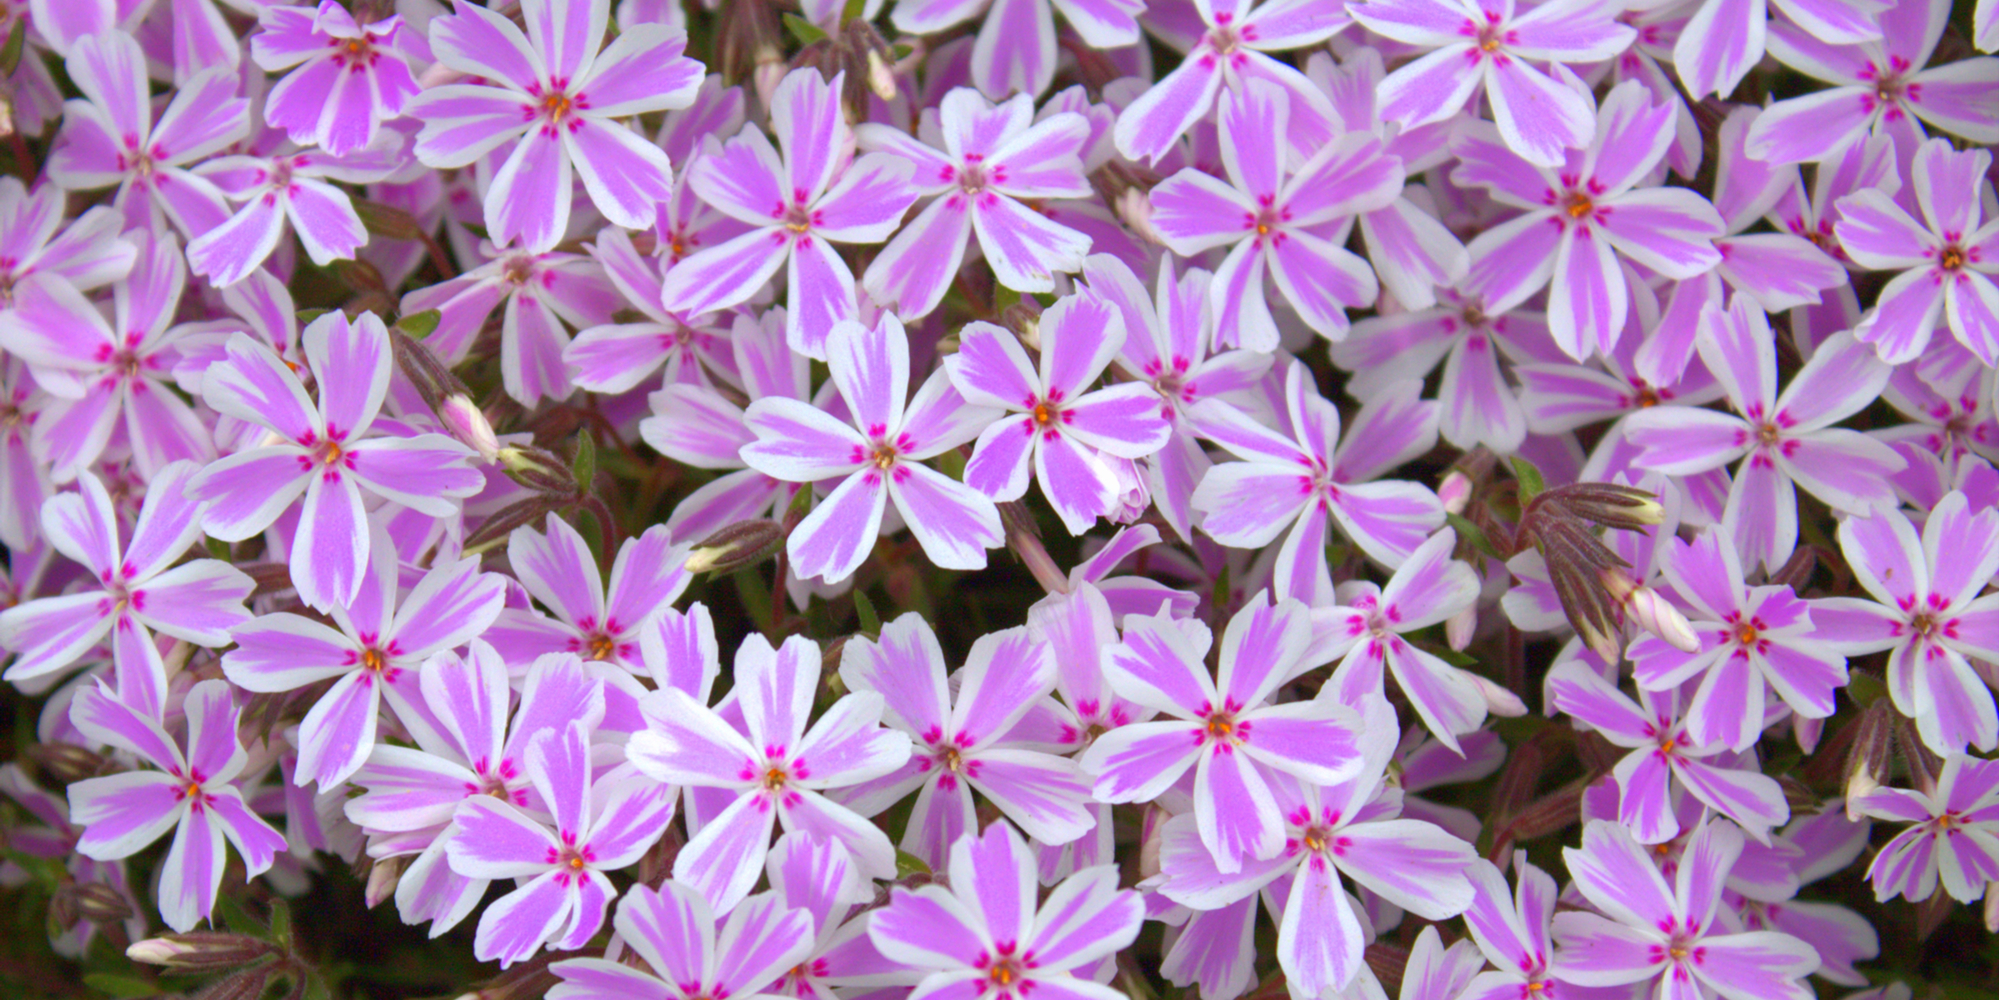 Did you know that phlox is a winter blooming flower? For more flowers that bloom in the winter, read here. Your garden will look happy all year long.